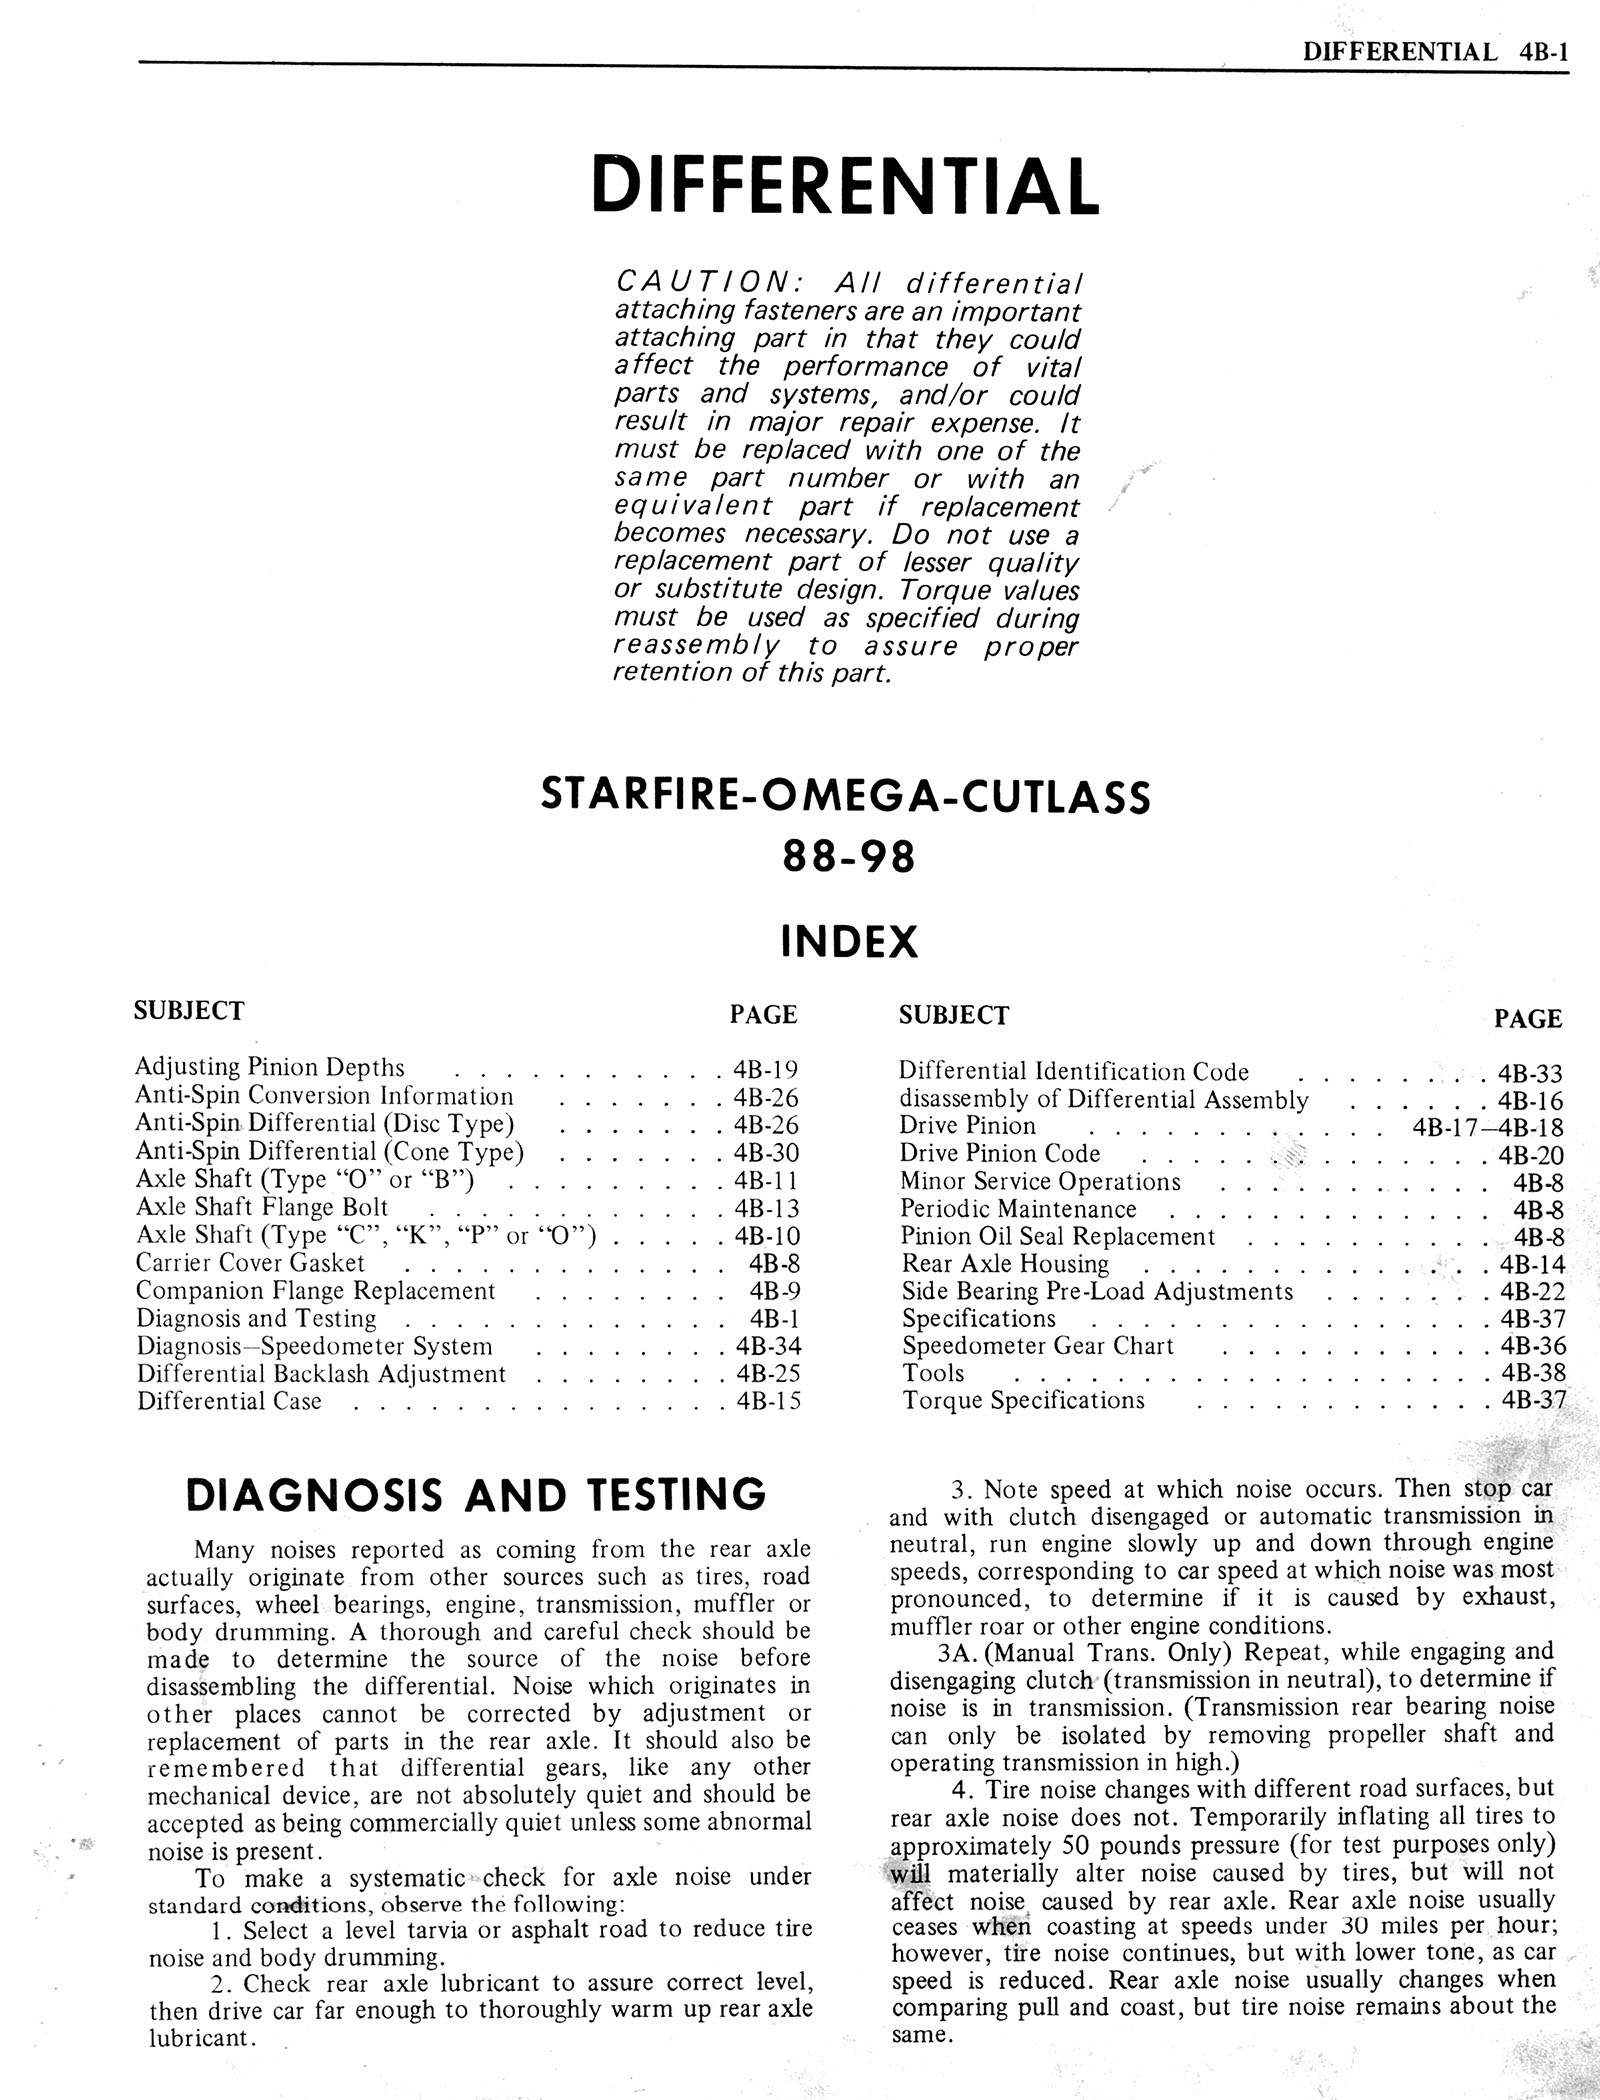 1976 Oldsmobile Service Manual page 289 of 1390